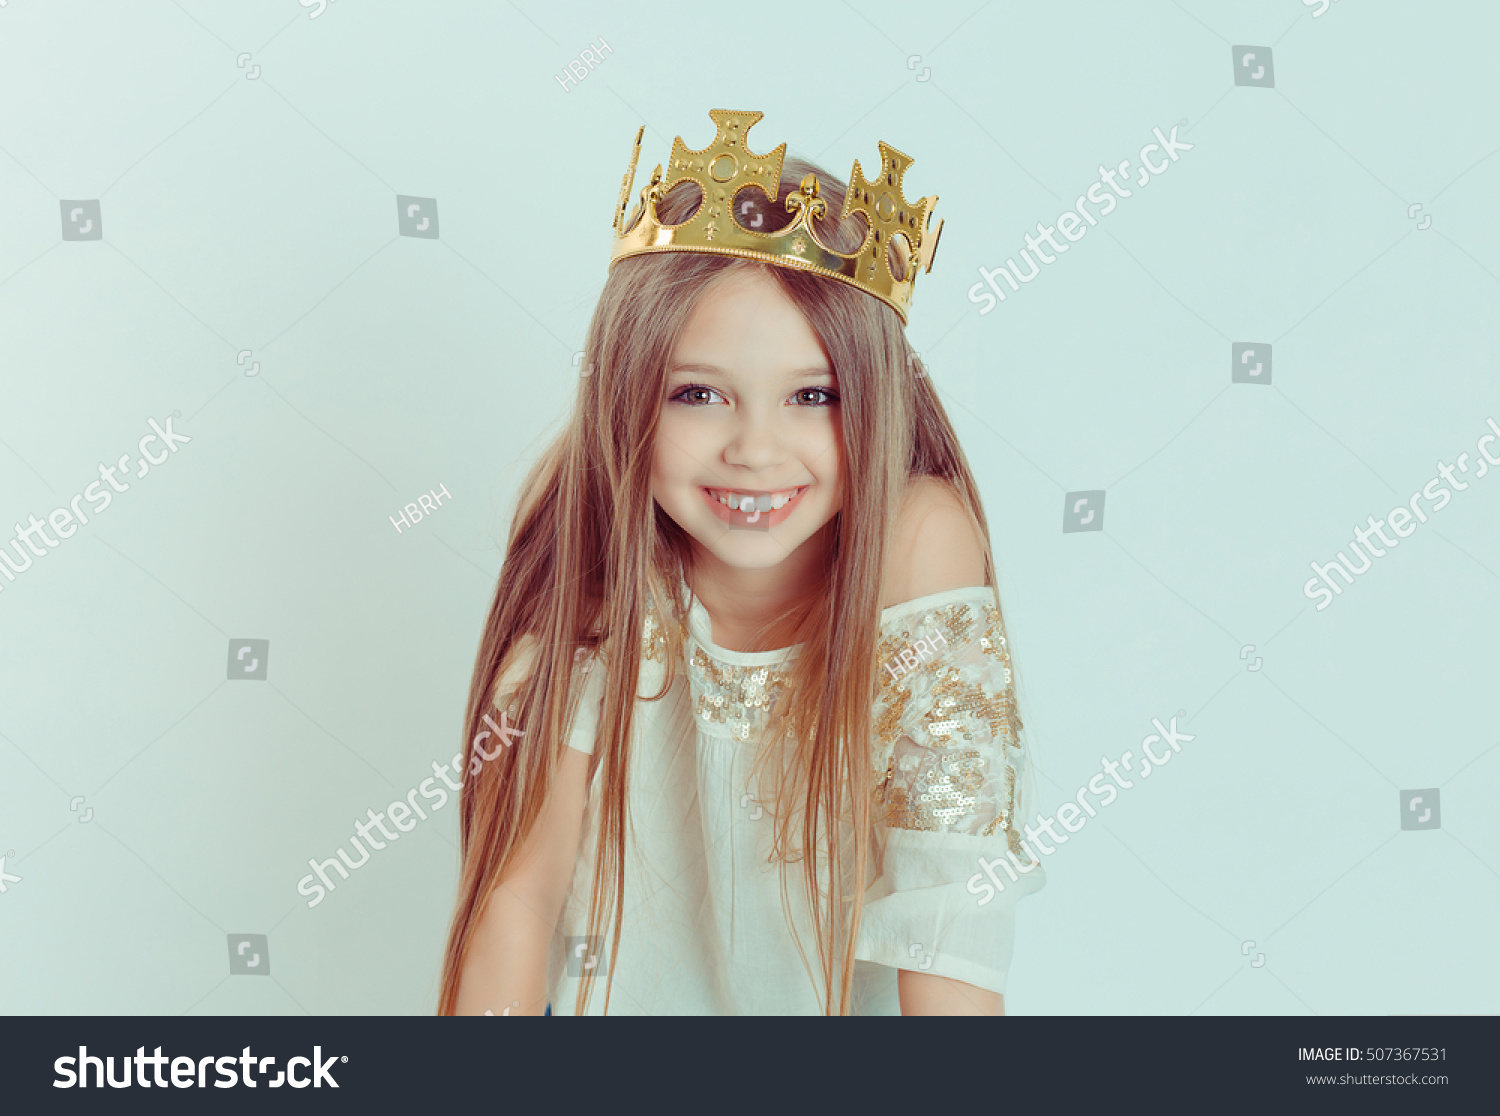 Young girl cute smile wearing crown stock photo edit now 507367531 young girl with a cute smile wearing a crown and a white dress on holiday isolated izmirmasajfo